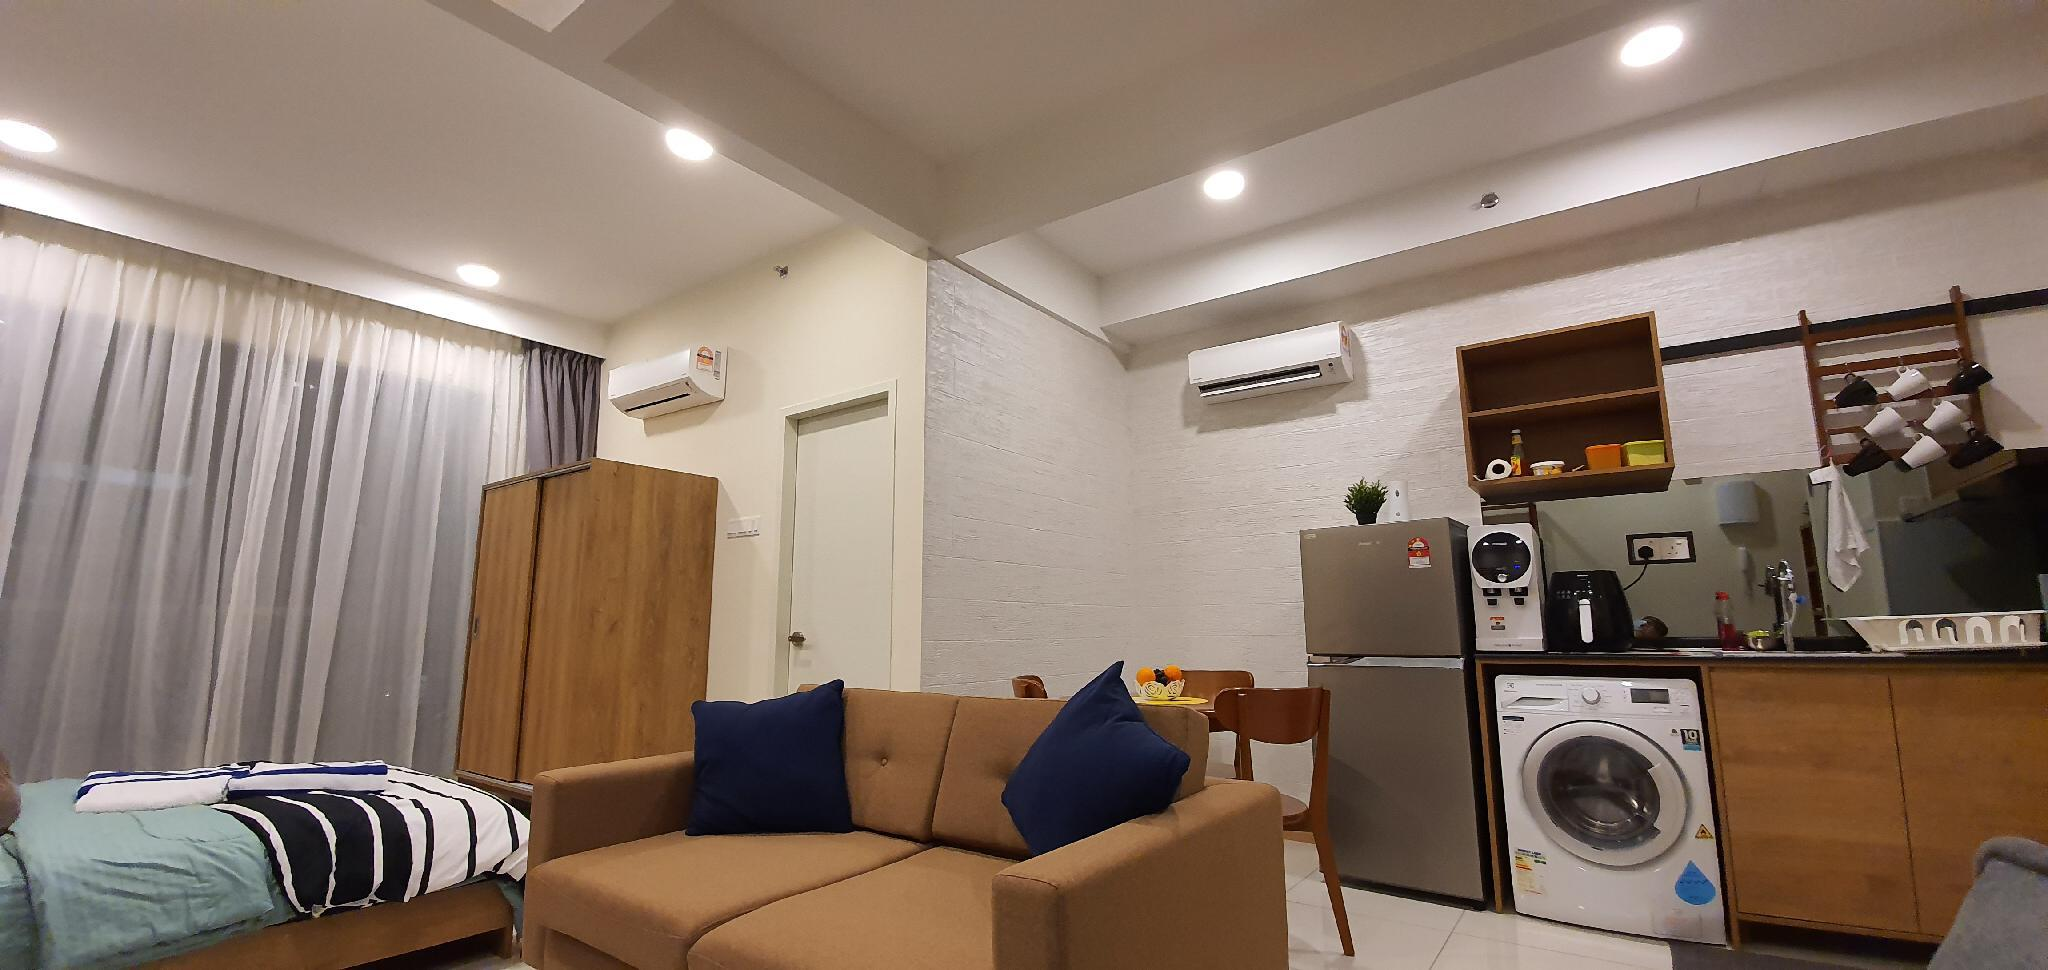 Aisya Studio Suite Seafront Residence, Timur Bay